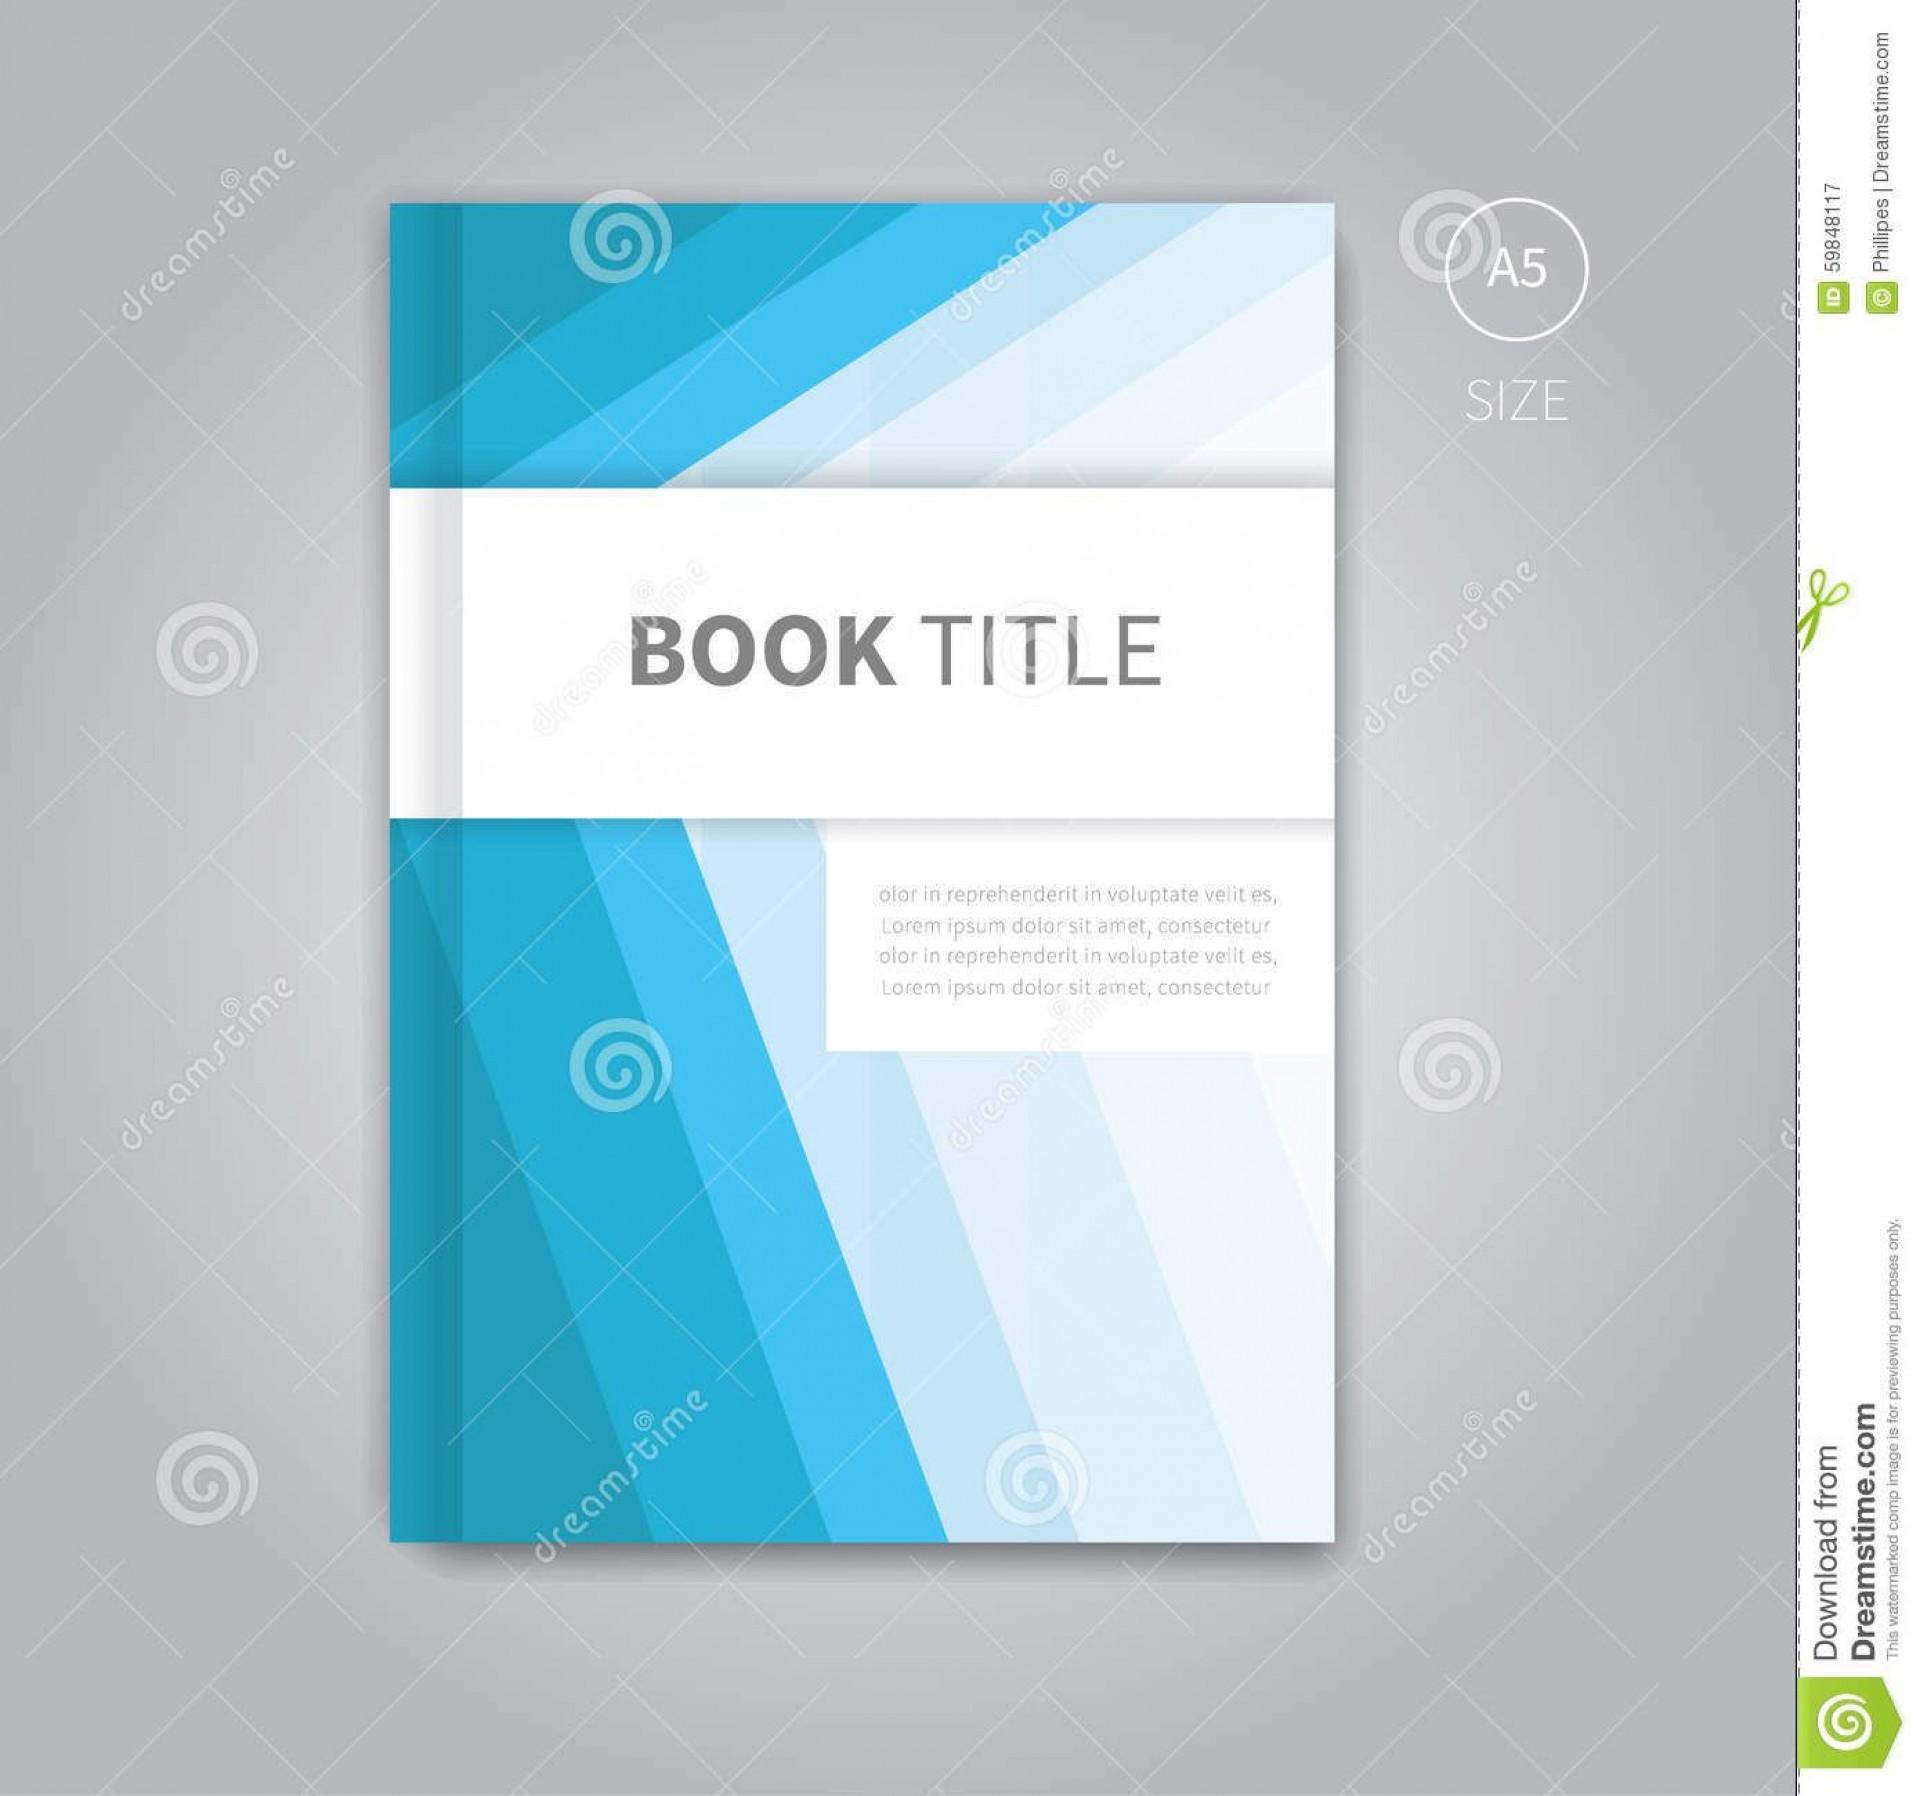 010 Staggering Book Cover Template Free Download Highest Clarity  Illustrator Design Vector Illustration1920